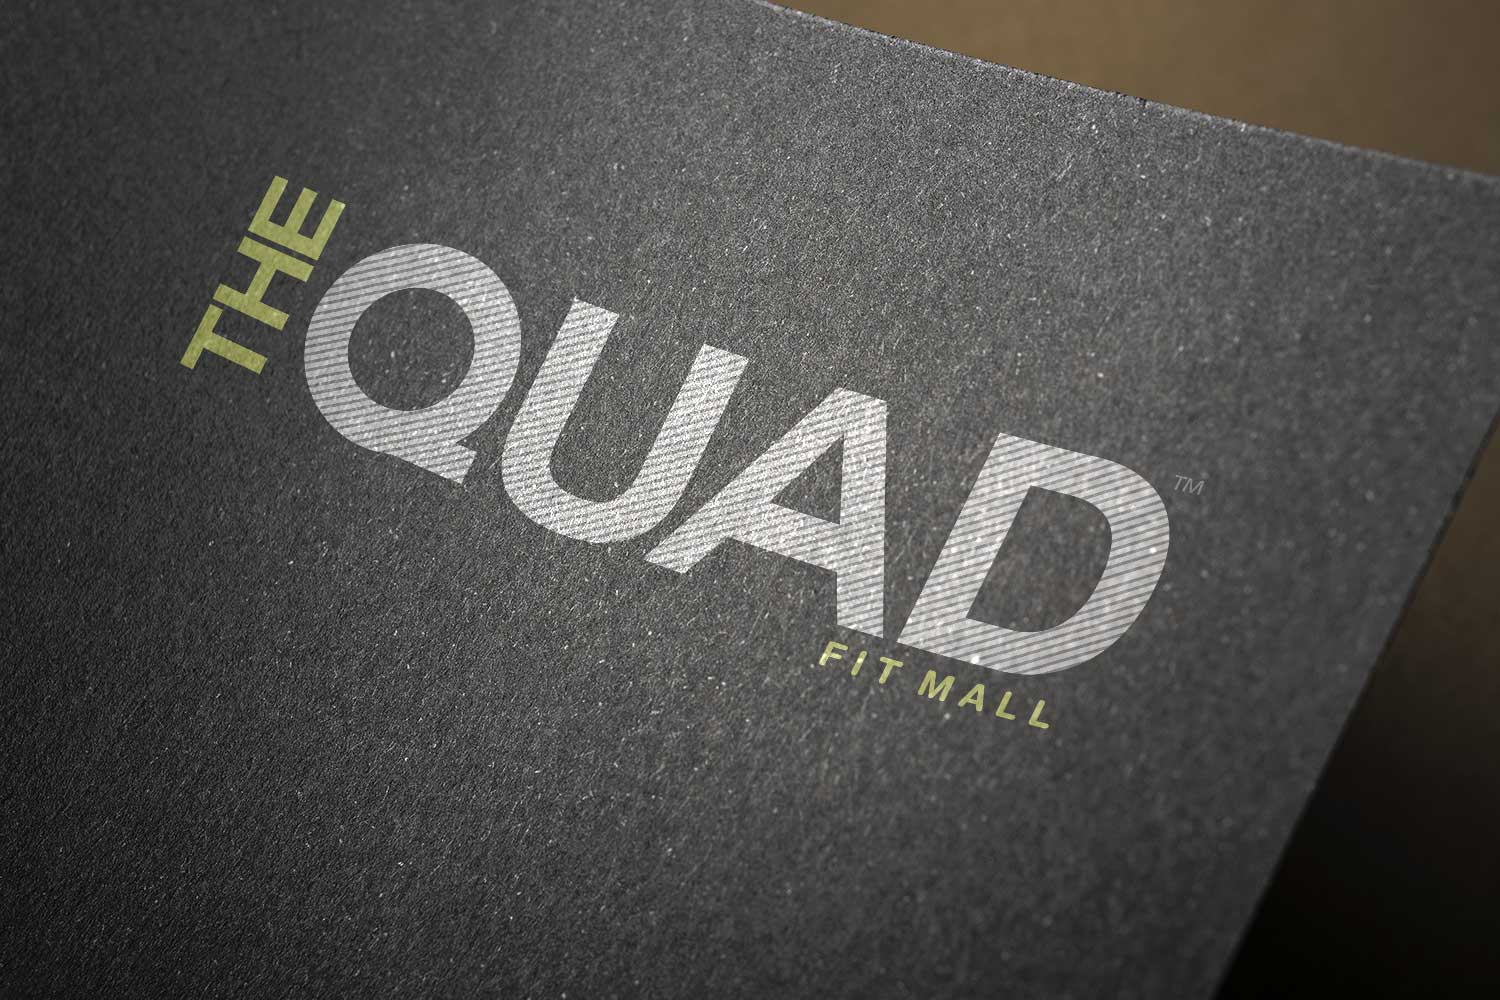 THE-QUAD-logo.jpg